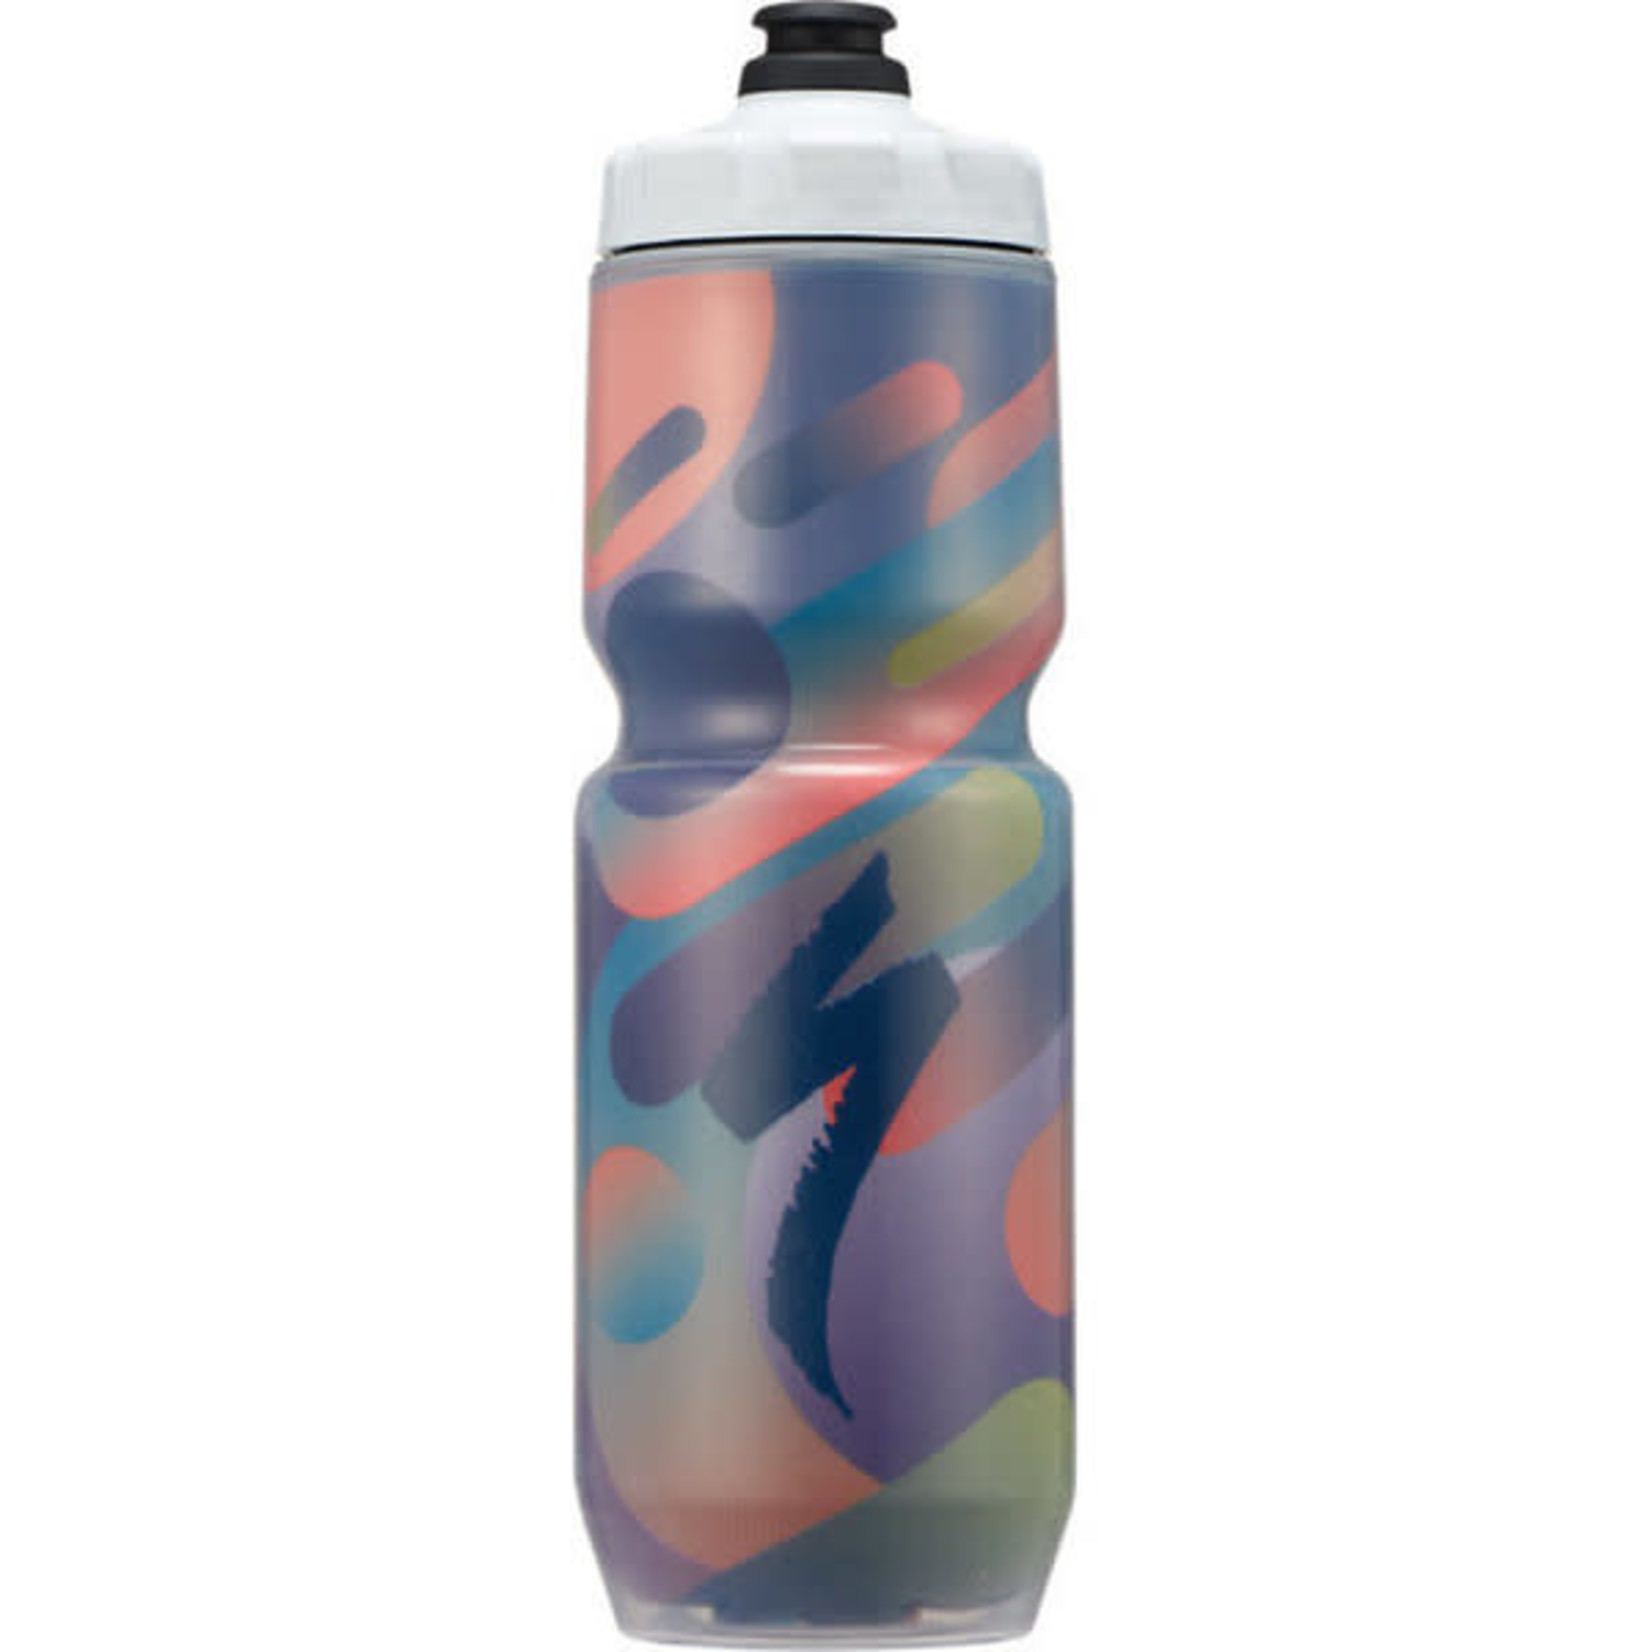 Specialized Purist Insulated Bottle, 23 oz, Acidic